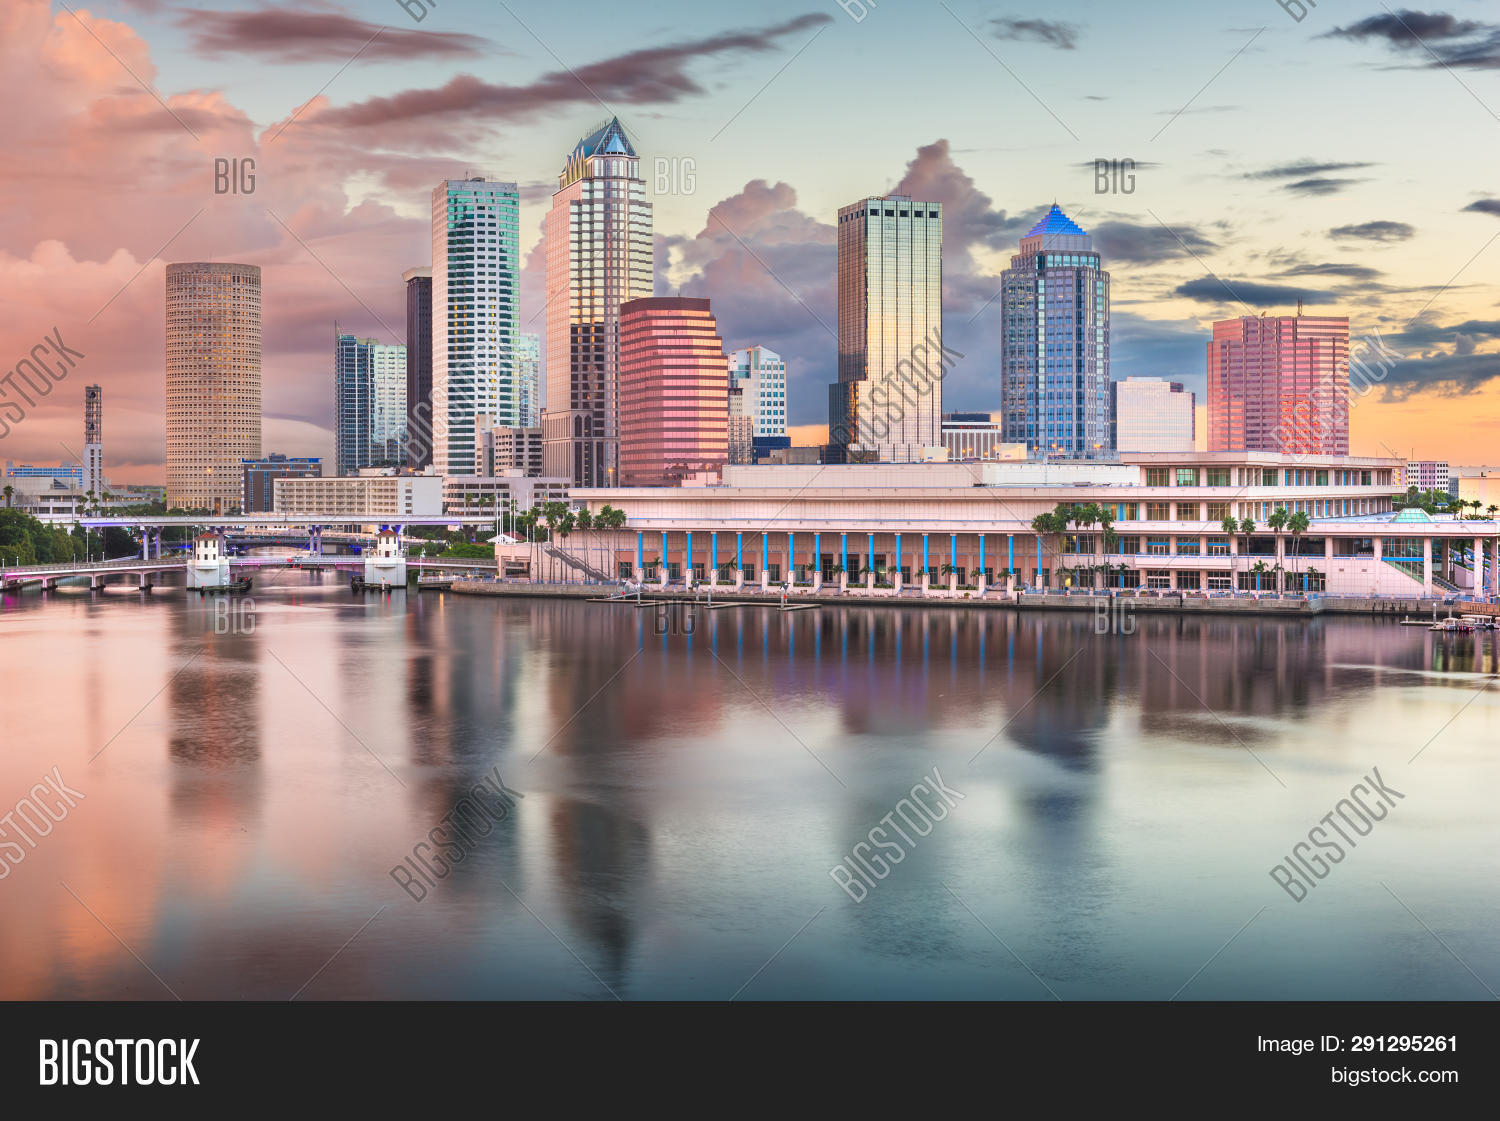 america,american,apartments,bay,buildings,business,center,city,cityscape,convention,county,dawn,district,downtown,dusk,evening,famous,financial,fl,florida,gulf,gulf of mexico,high rises,hillsborough,landmark,landscape,lights,location,night,offices,place,river,scene,scenery,scenic,sightseeing,skyline,skyscrapers,south,southern,tampa,tourism,town,travel,twilight,united states,usa,view,water,waterfront